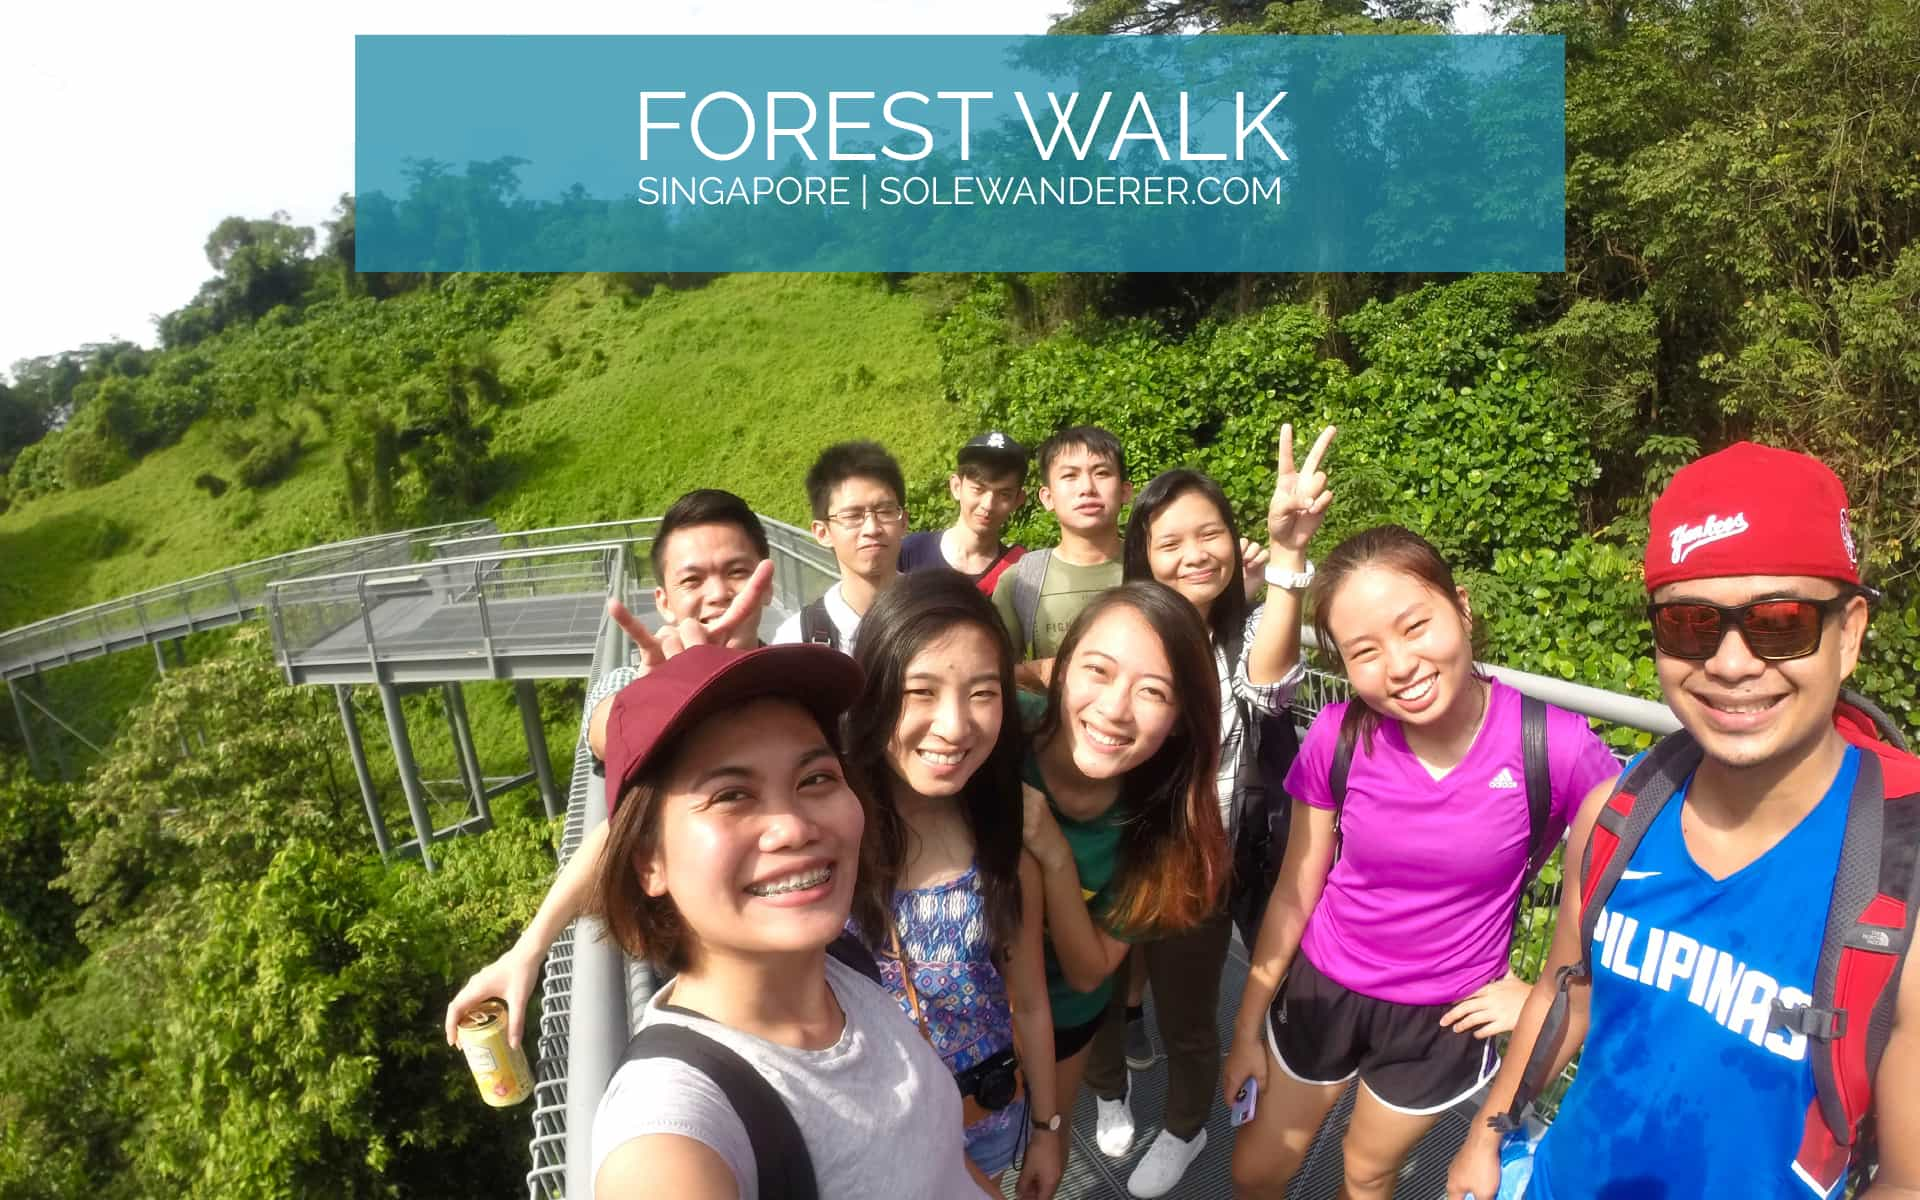 Forest Walk Singapore - The Sole Wanderer